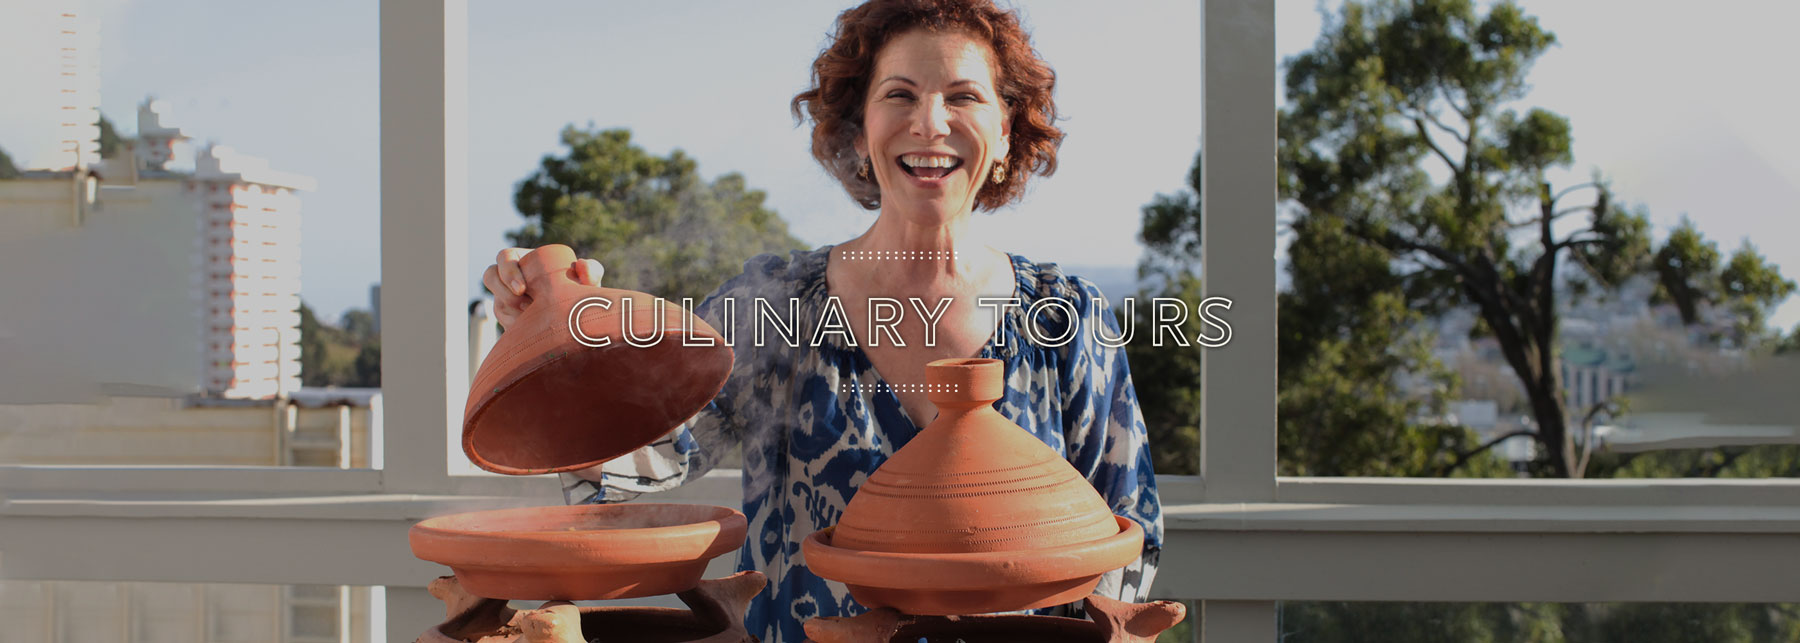 Joanne Weir Culinary Tours